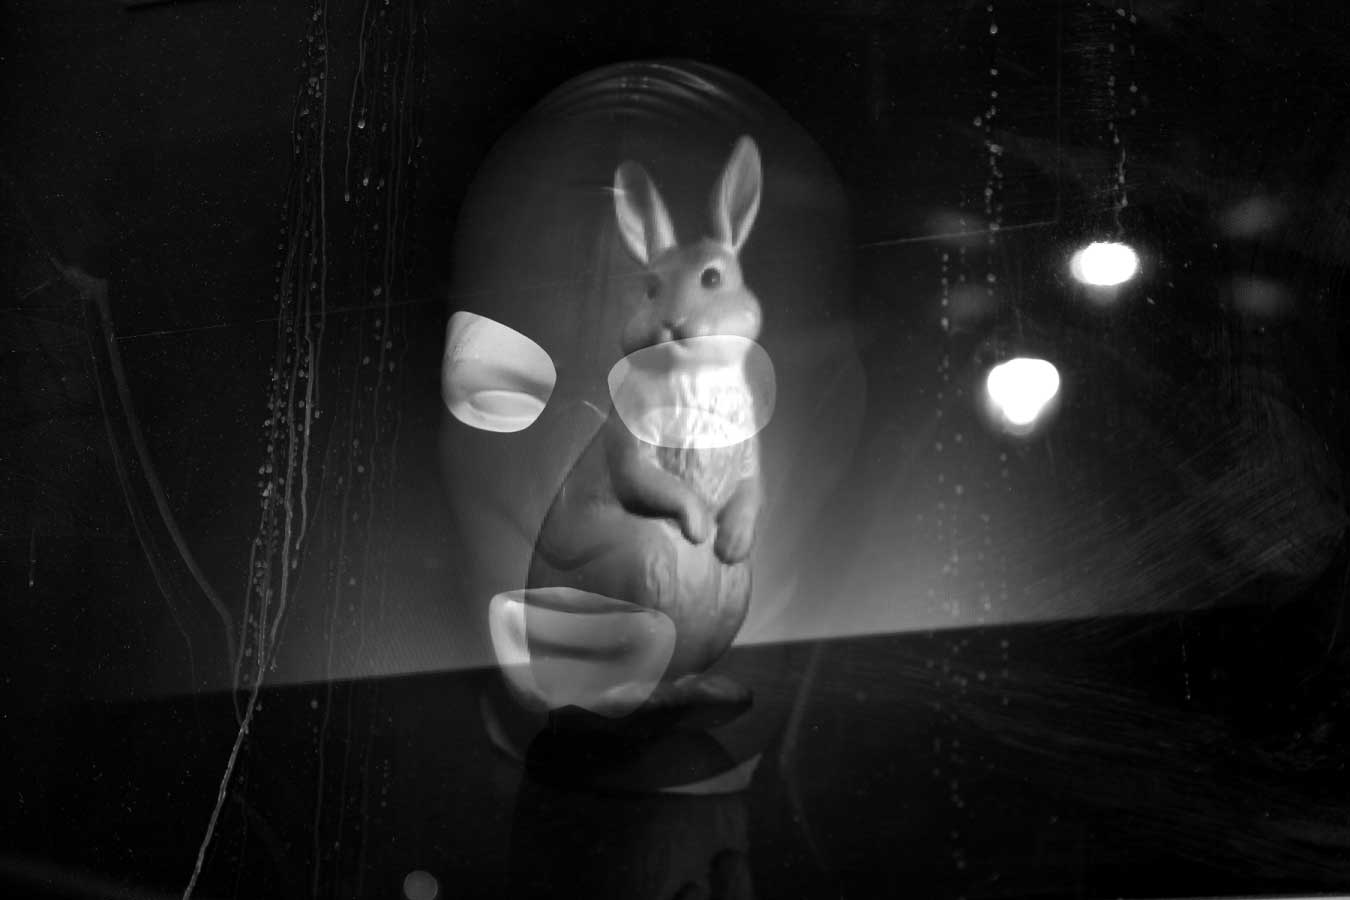 rabit with mask